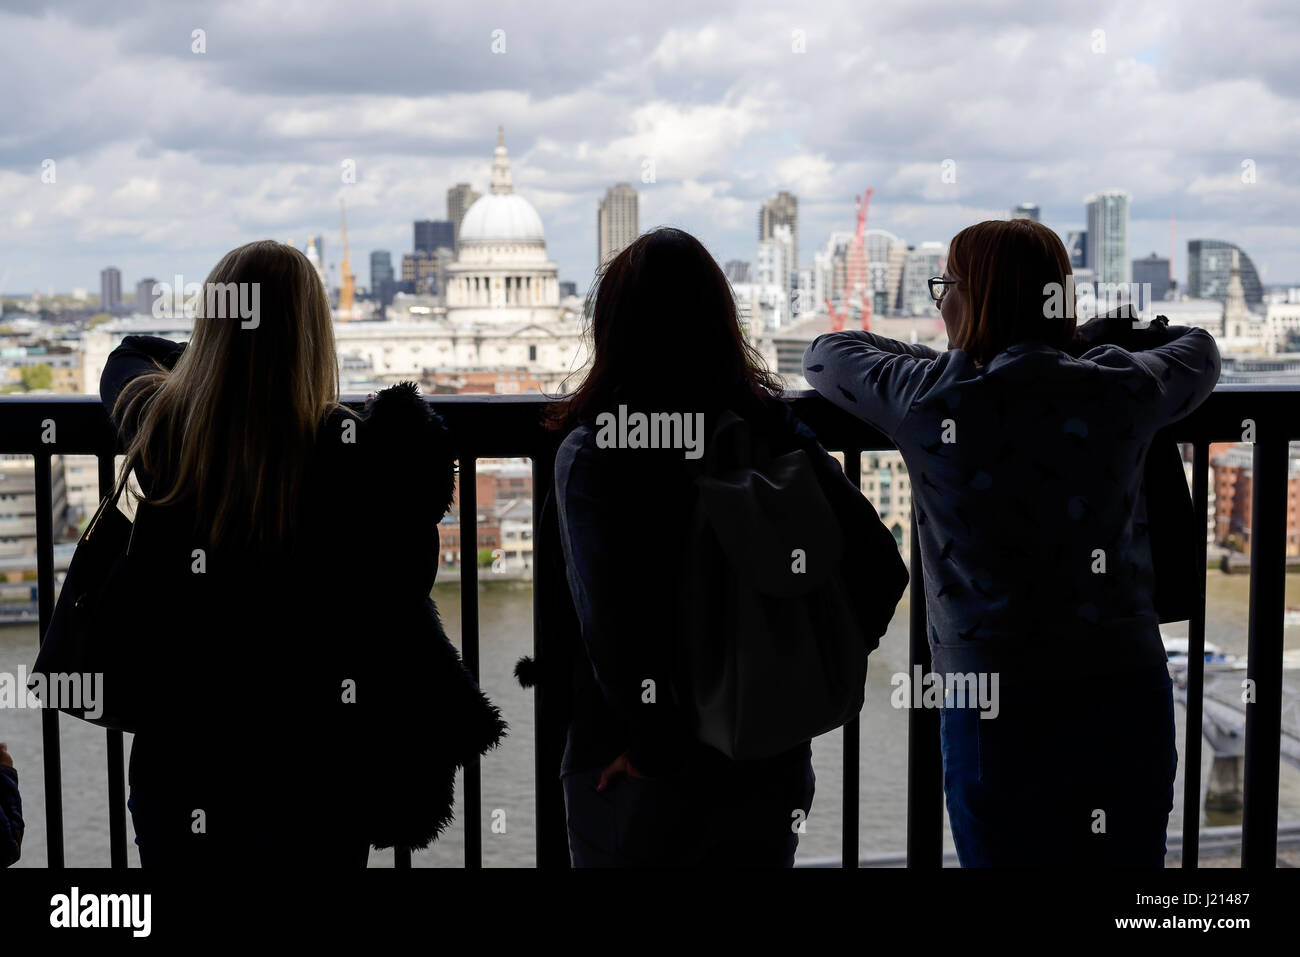 People admiring the view from the Switch House viewing level at Tate Modern London UK - Stock Image